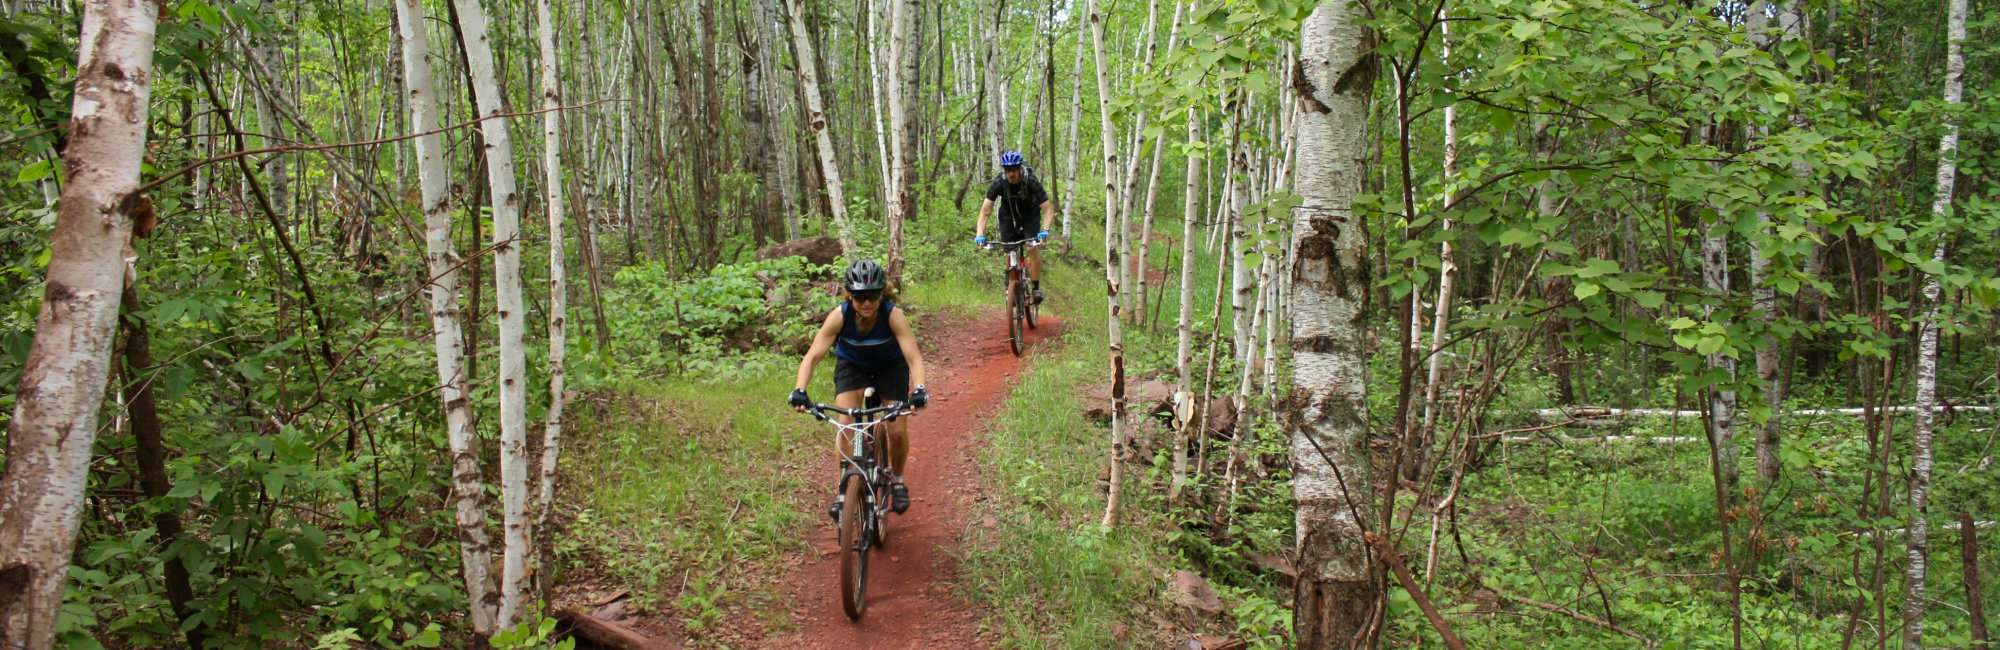 Slide-Recreation-Biking-Trail-Maps